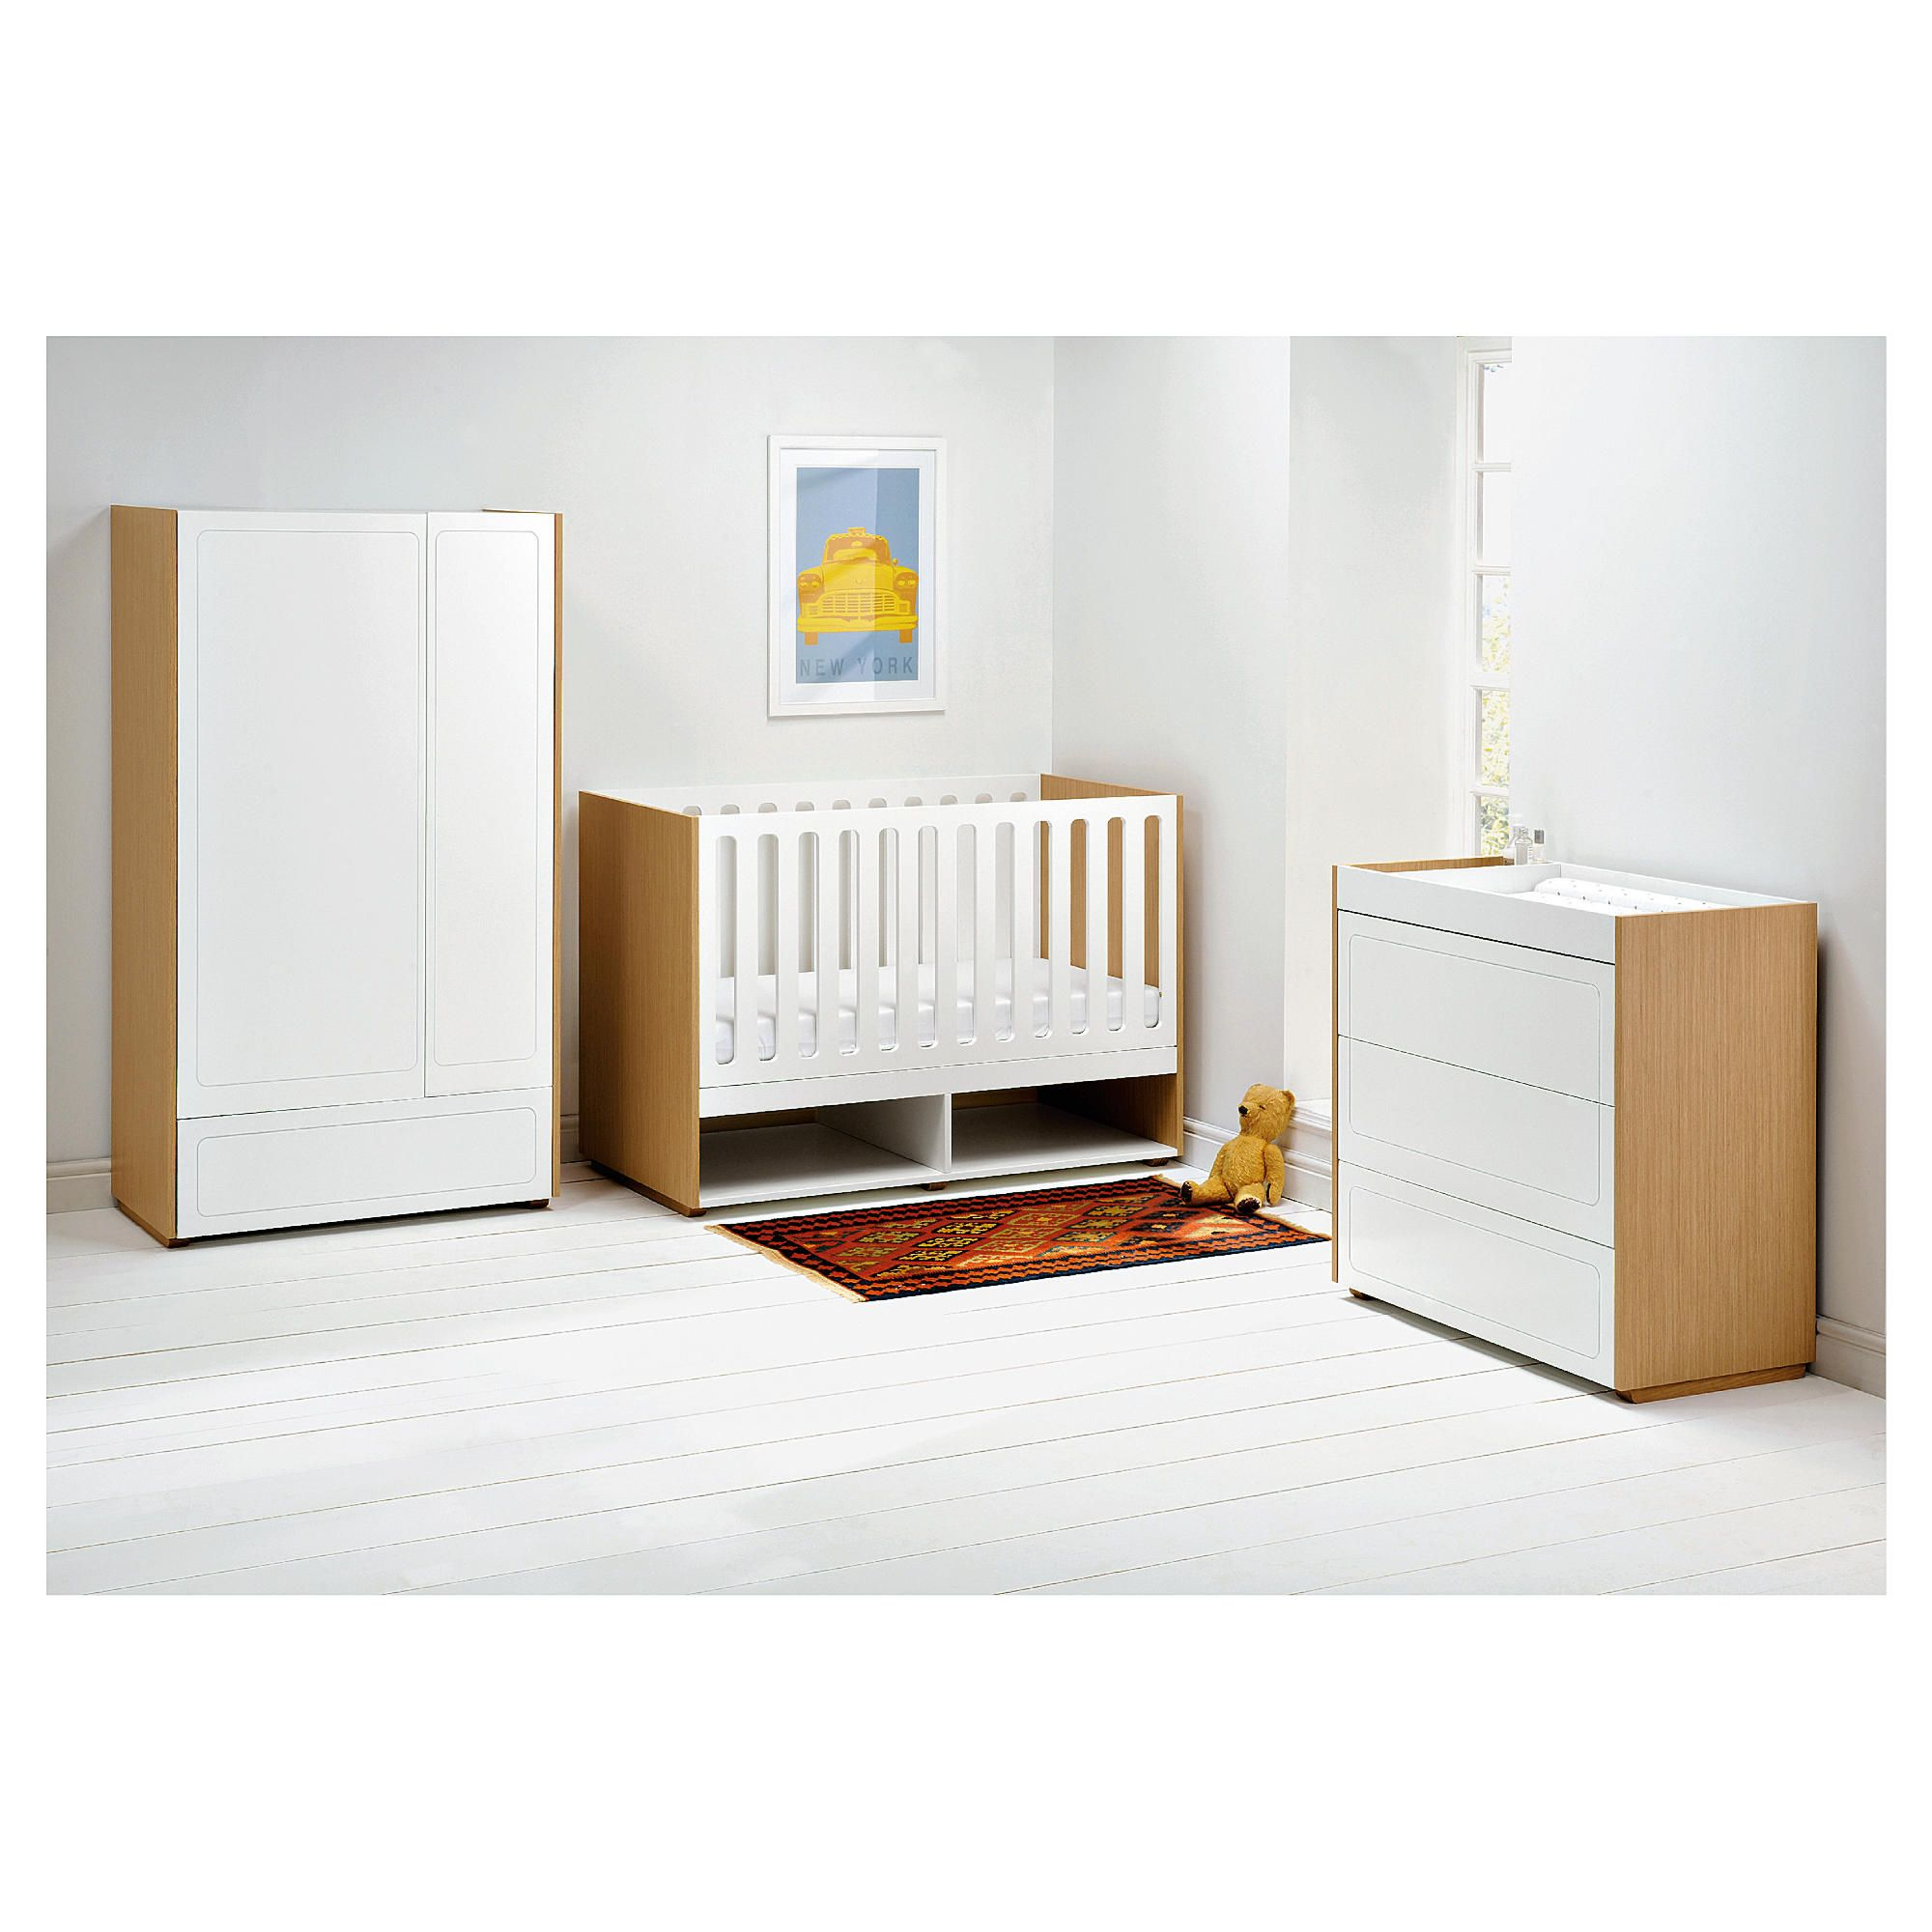 East Coast Monza 3 Piece Nursery Roomset at Tescos Direct